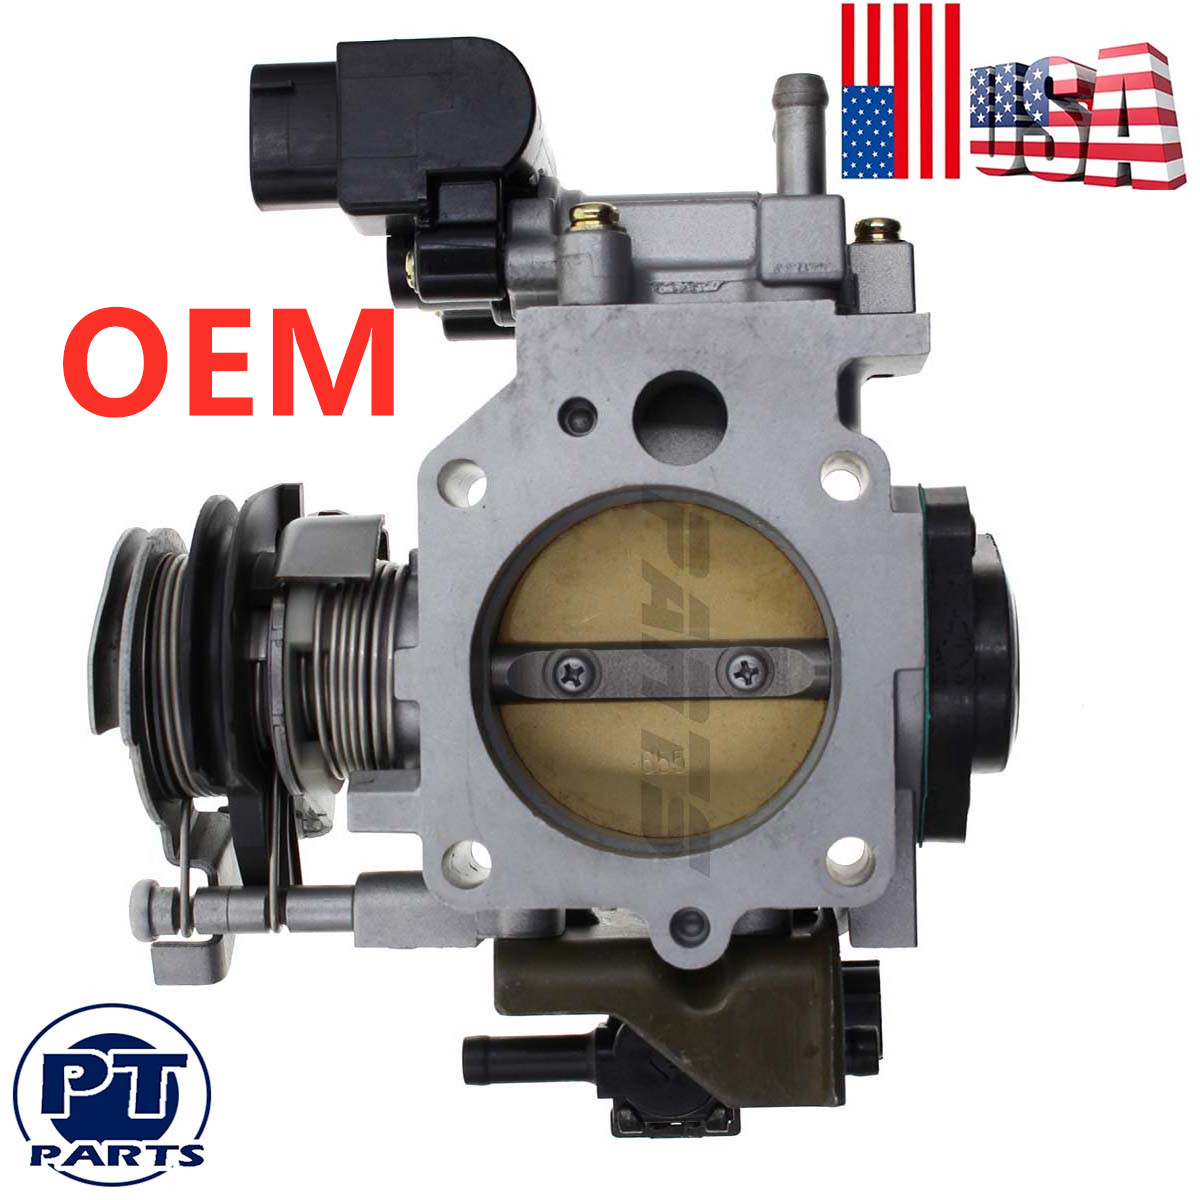 OEM Throttle Body For Honda 2001-2005 Civic  DX EX GX HX LX 16400-PLR-A54